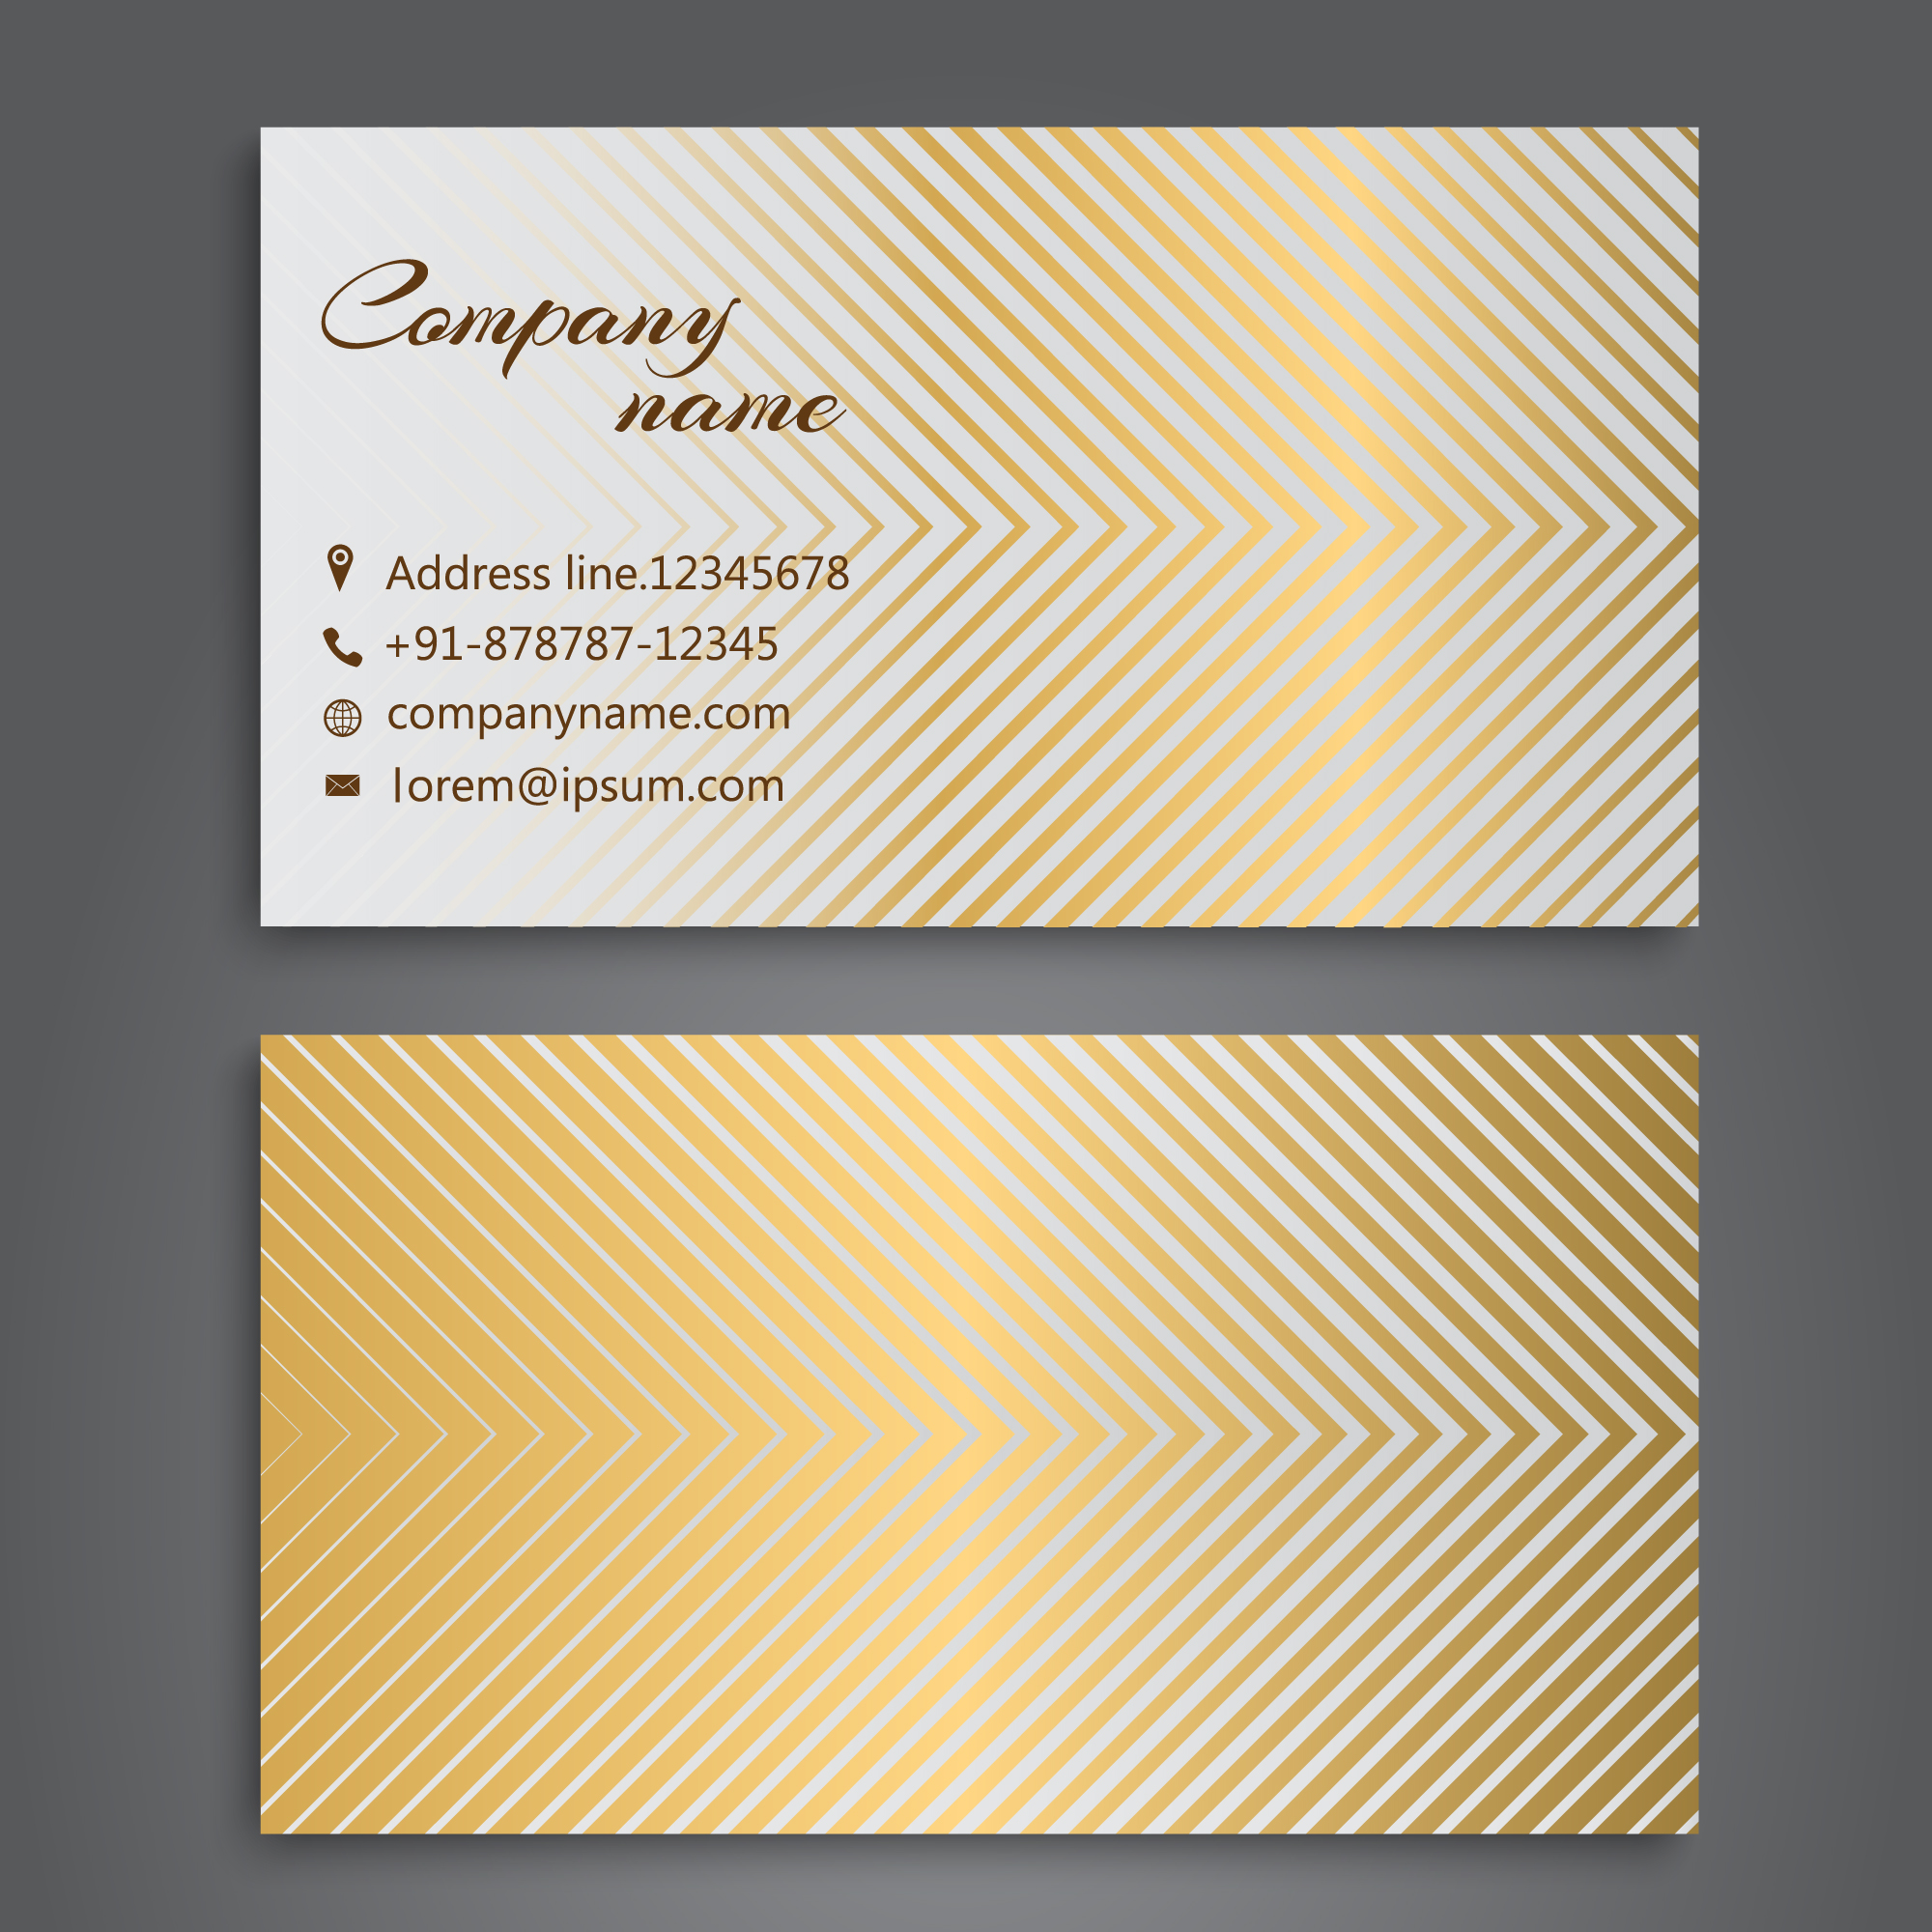 Business card with golden design